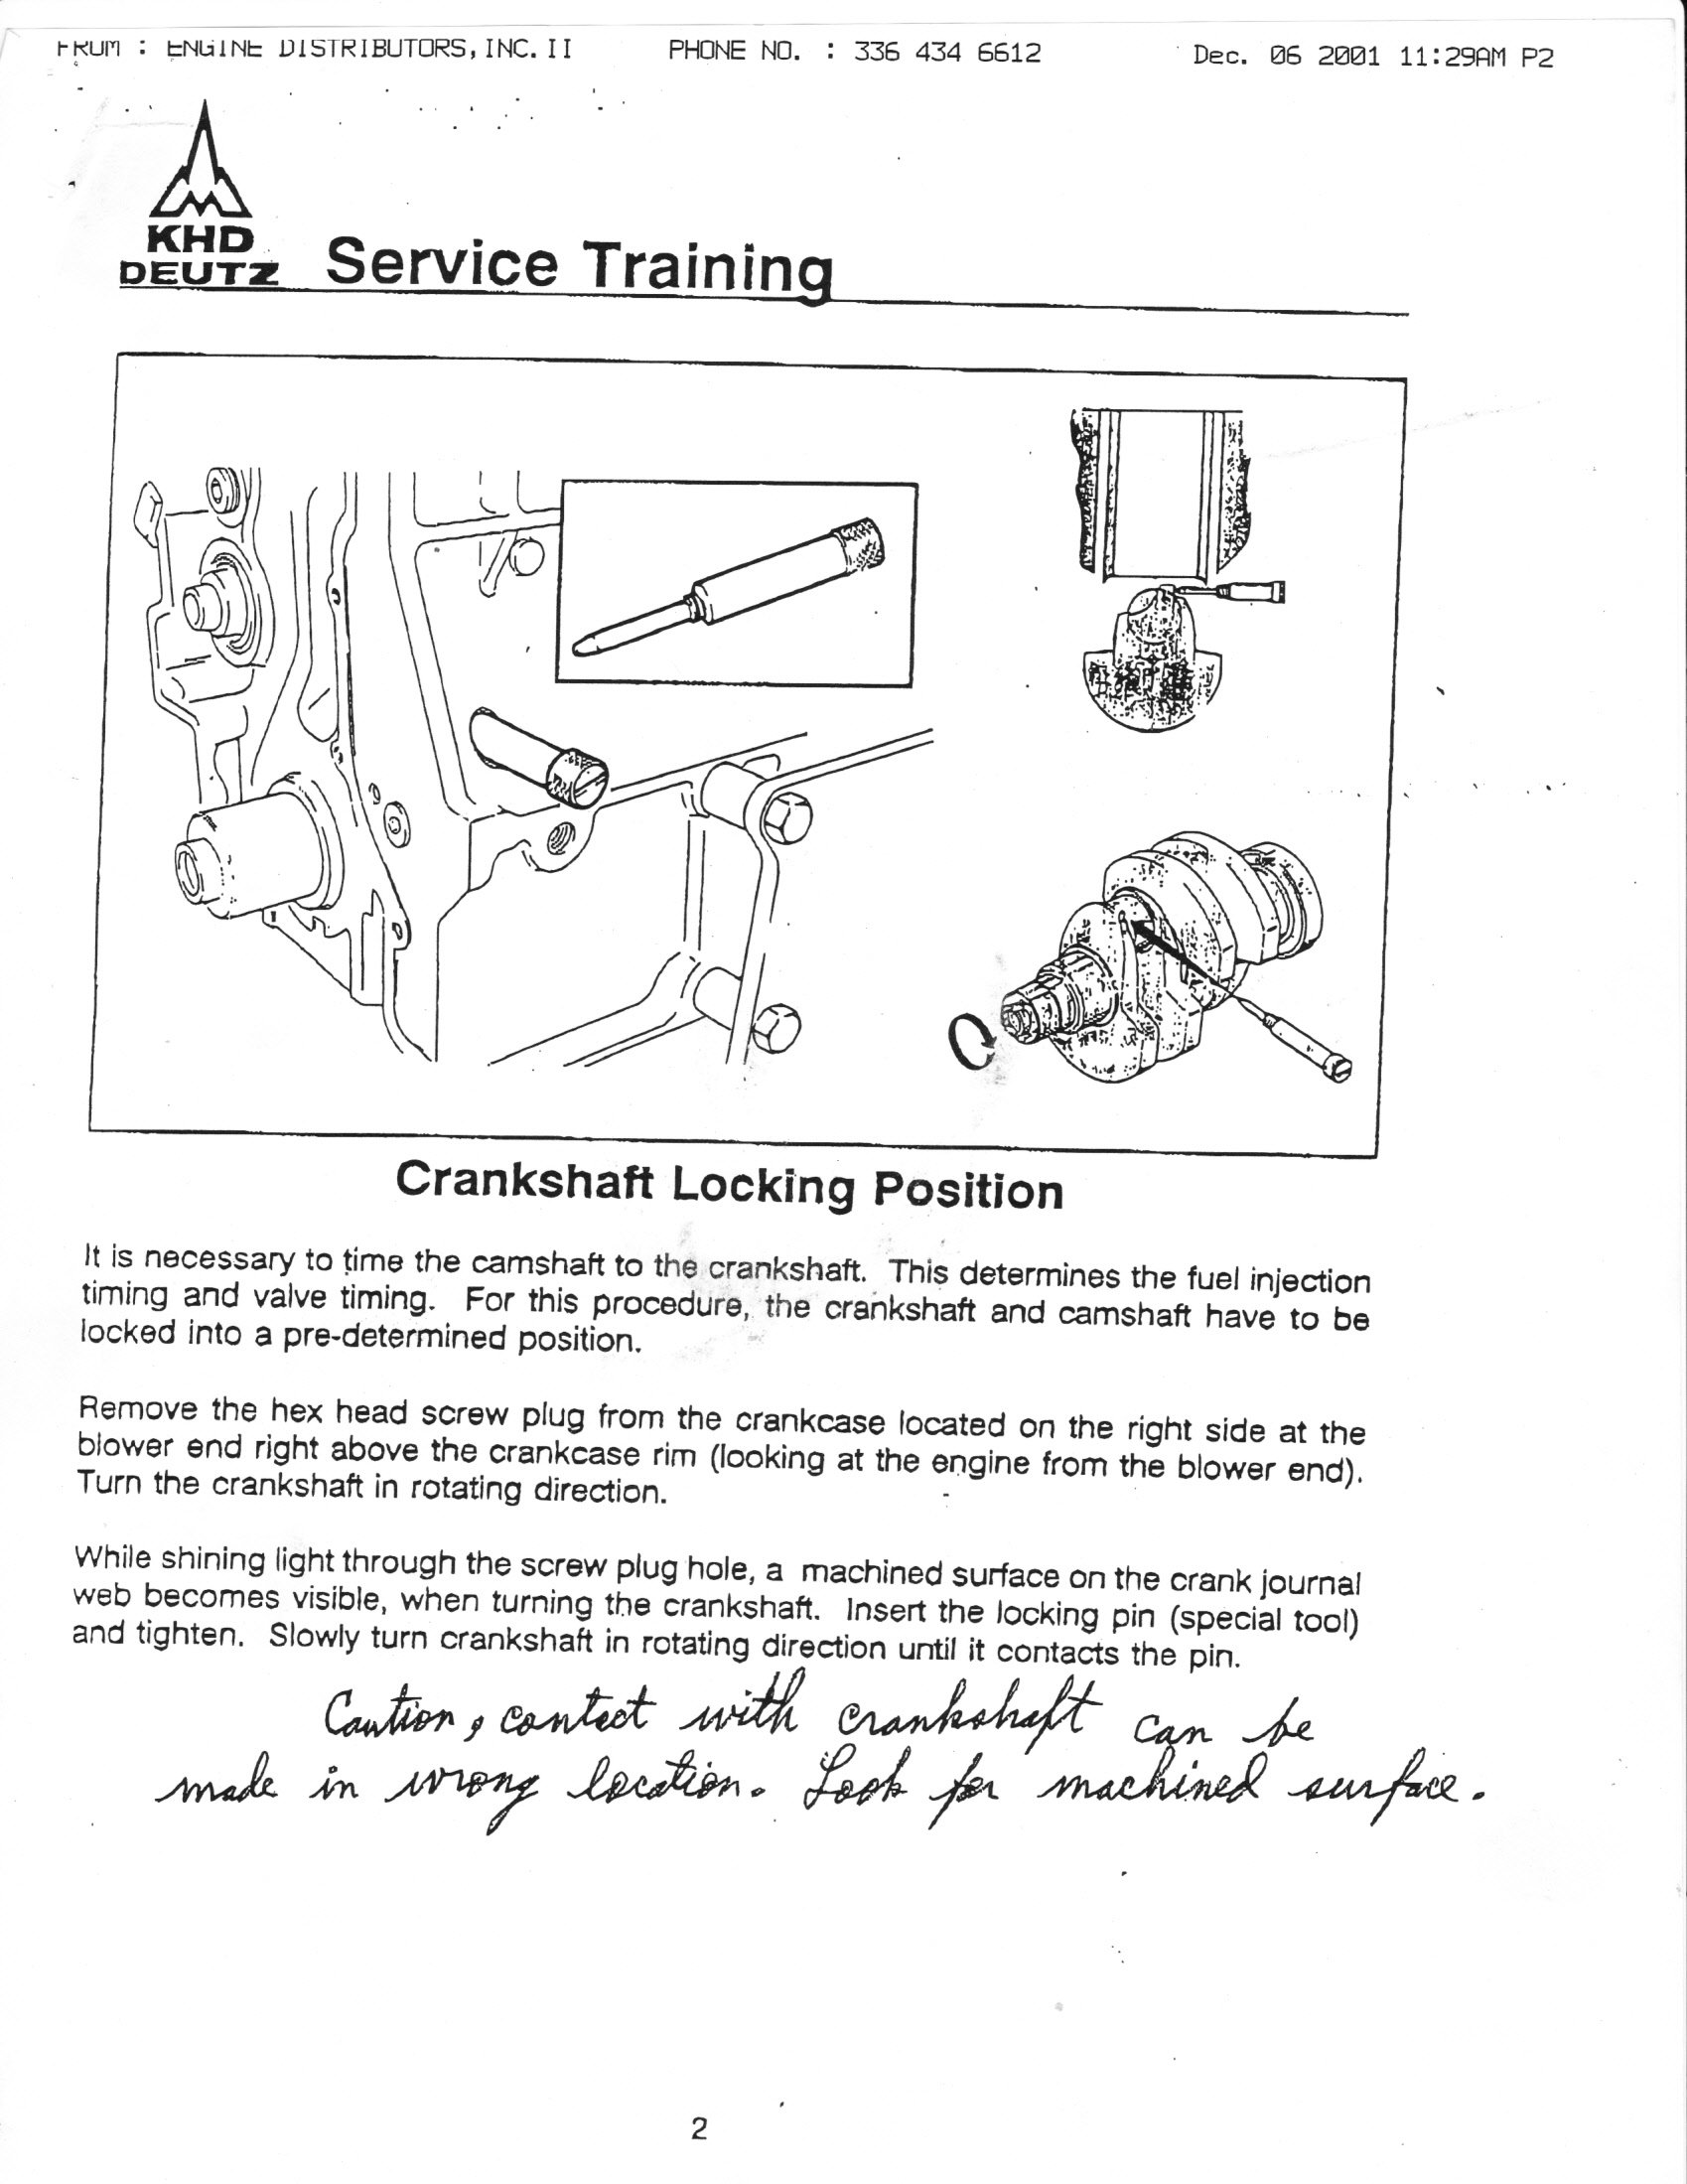 i need a workshop manual for a deutz f3l1011f motor or at least the rh justanswer com deutz f3l1011f service manual deutz f3l 1011 service manual download